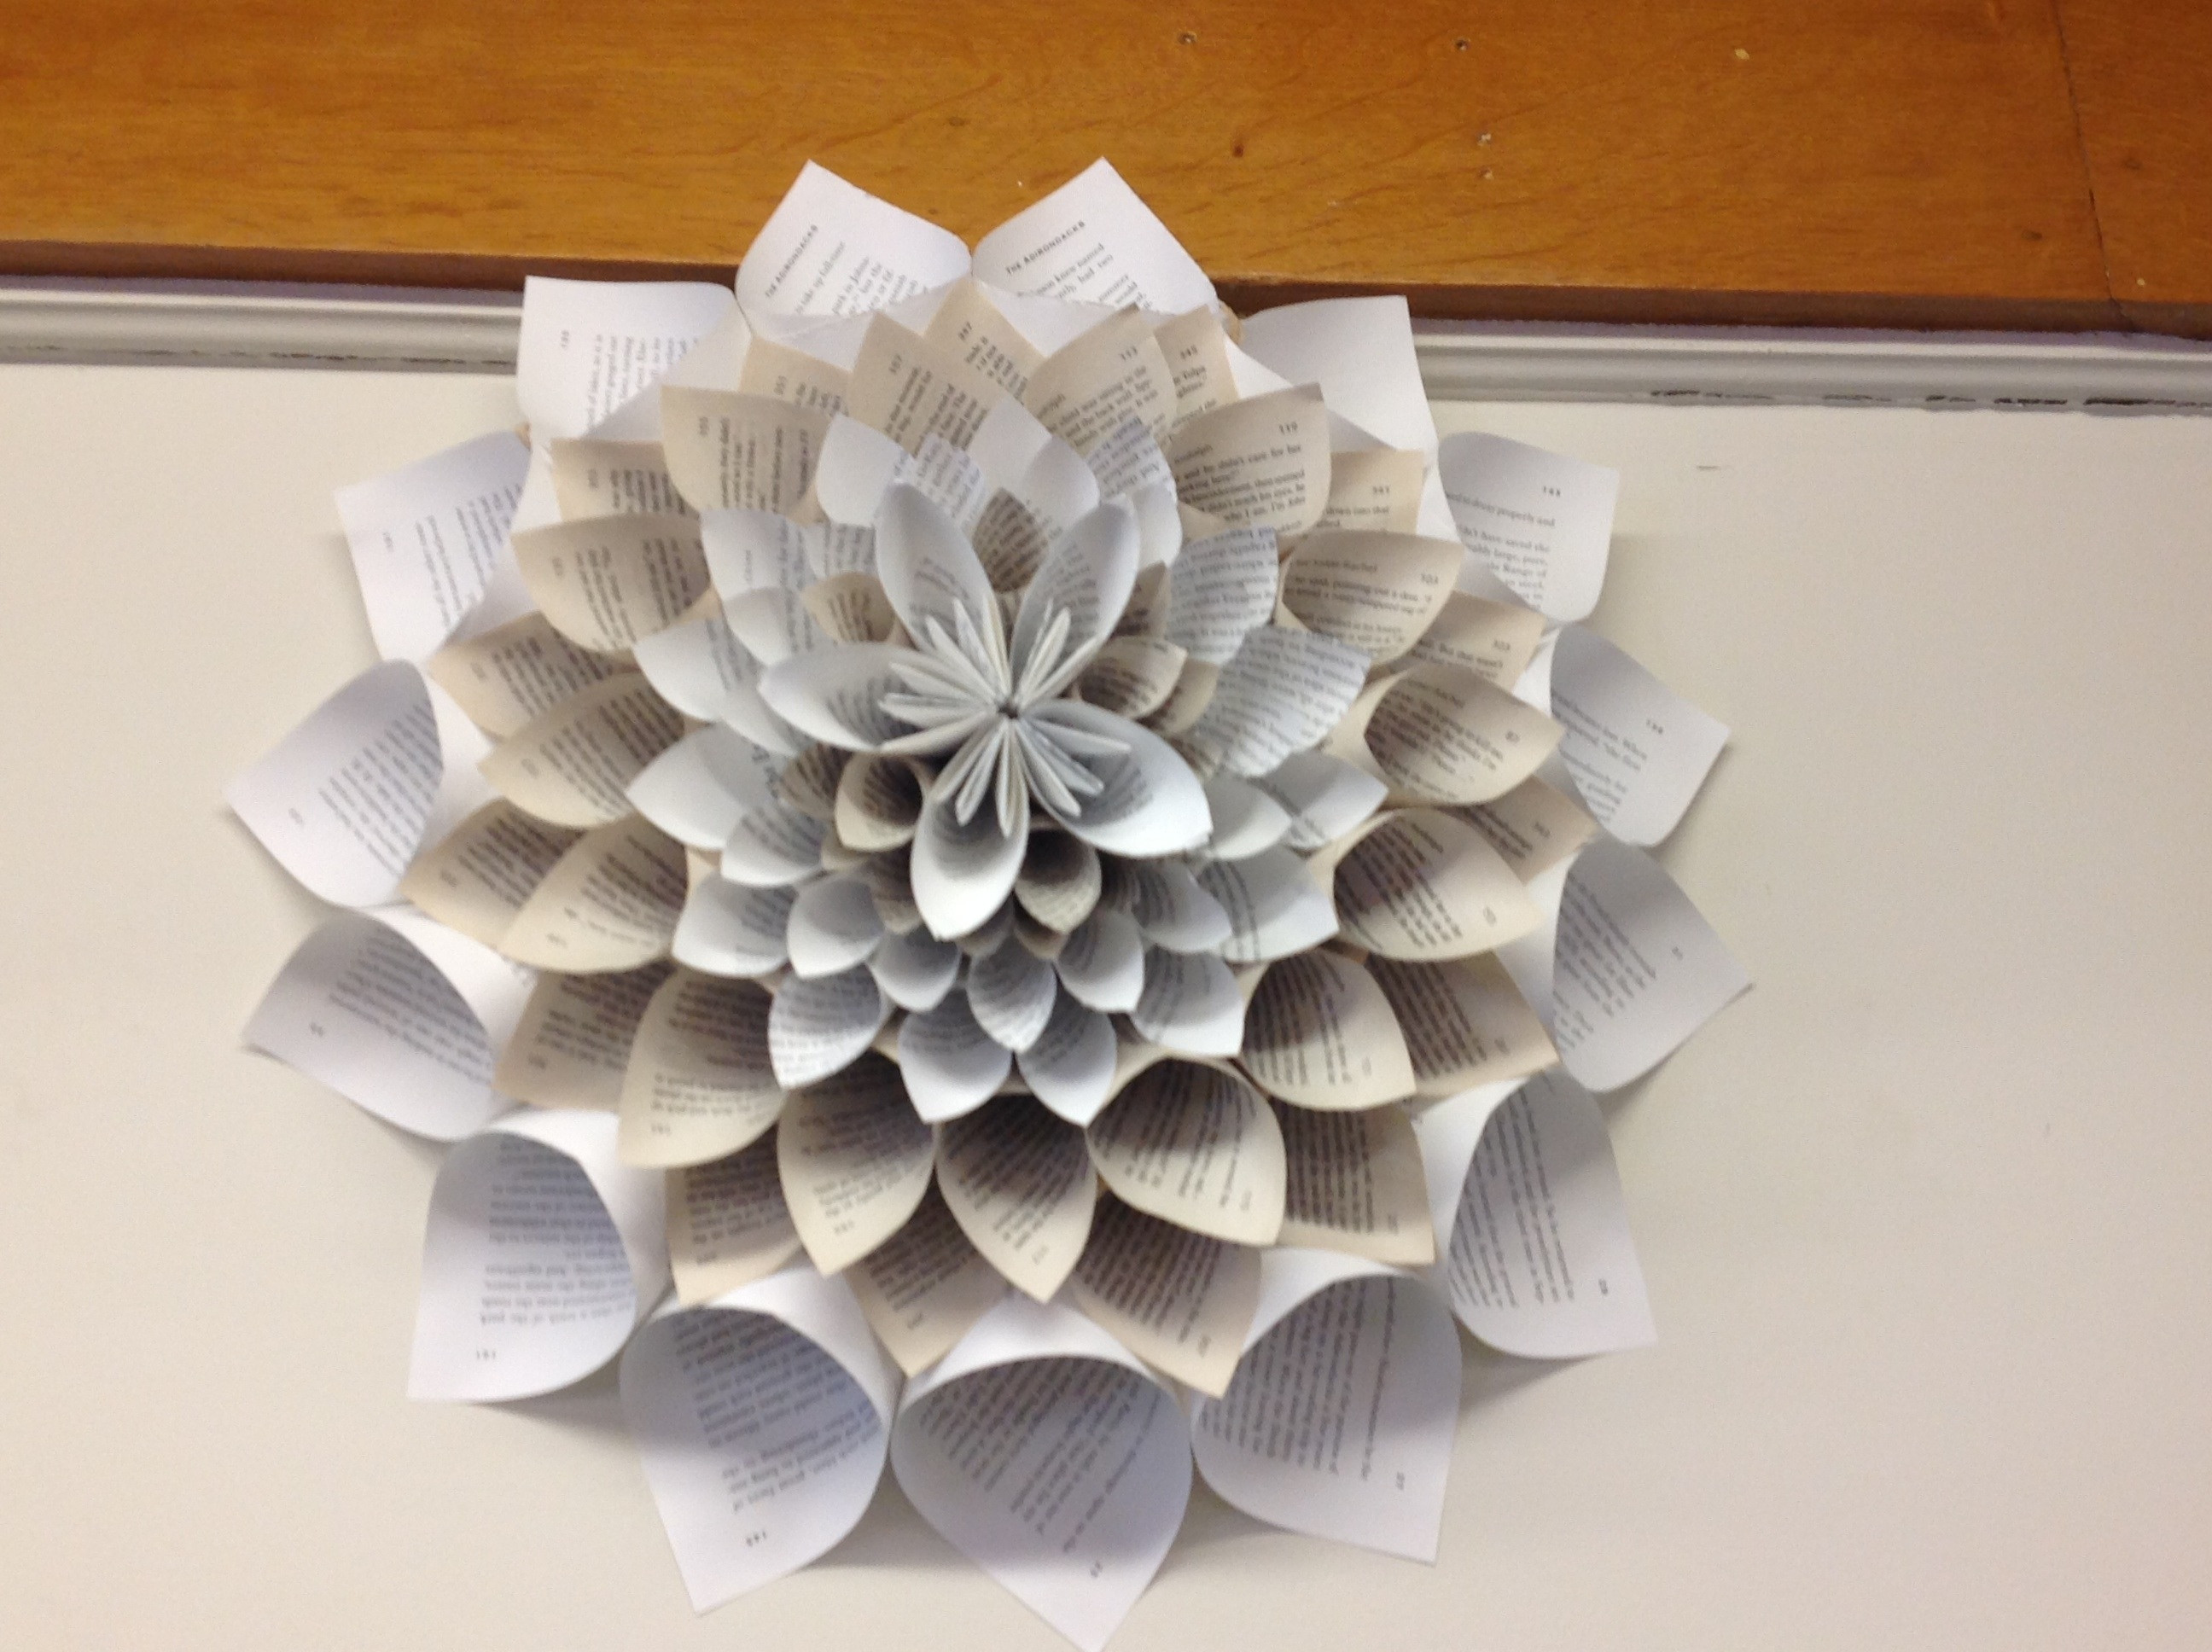 Best ideas about Cardboard Craft Ideas For Adults . Save or Pin Paper Crafts Ideas Adults Now.